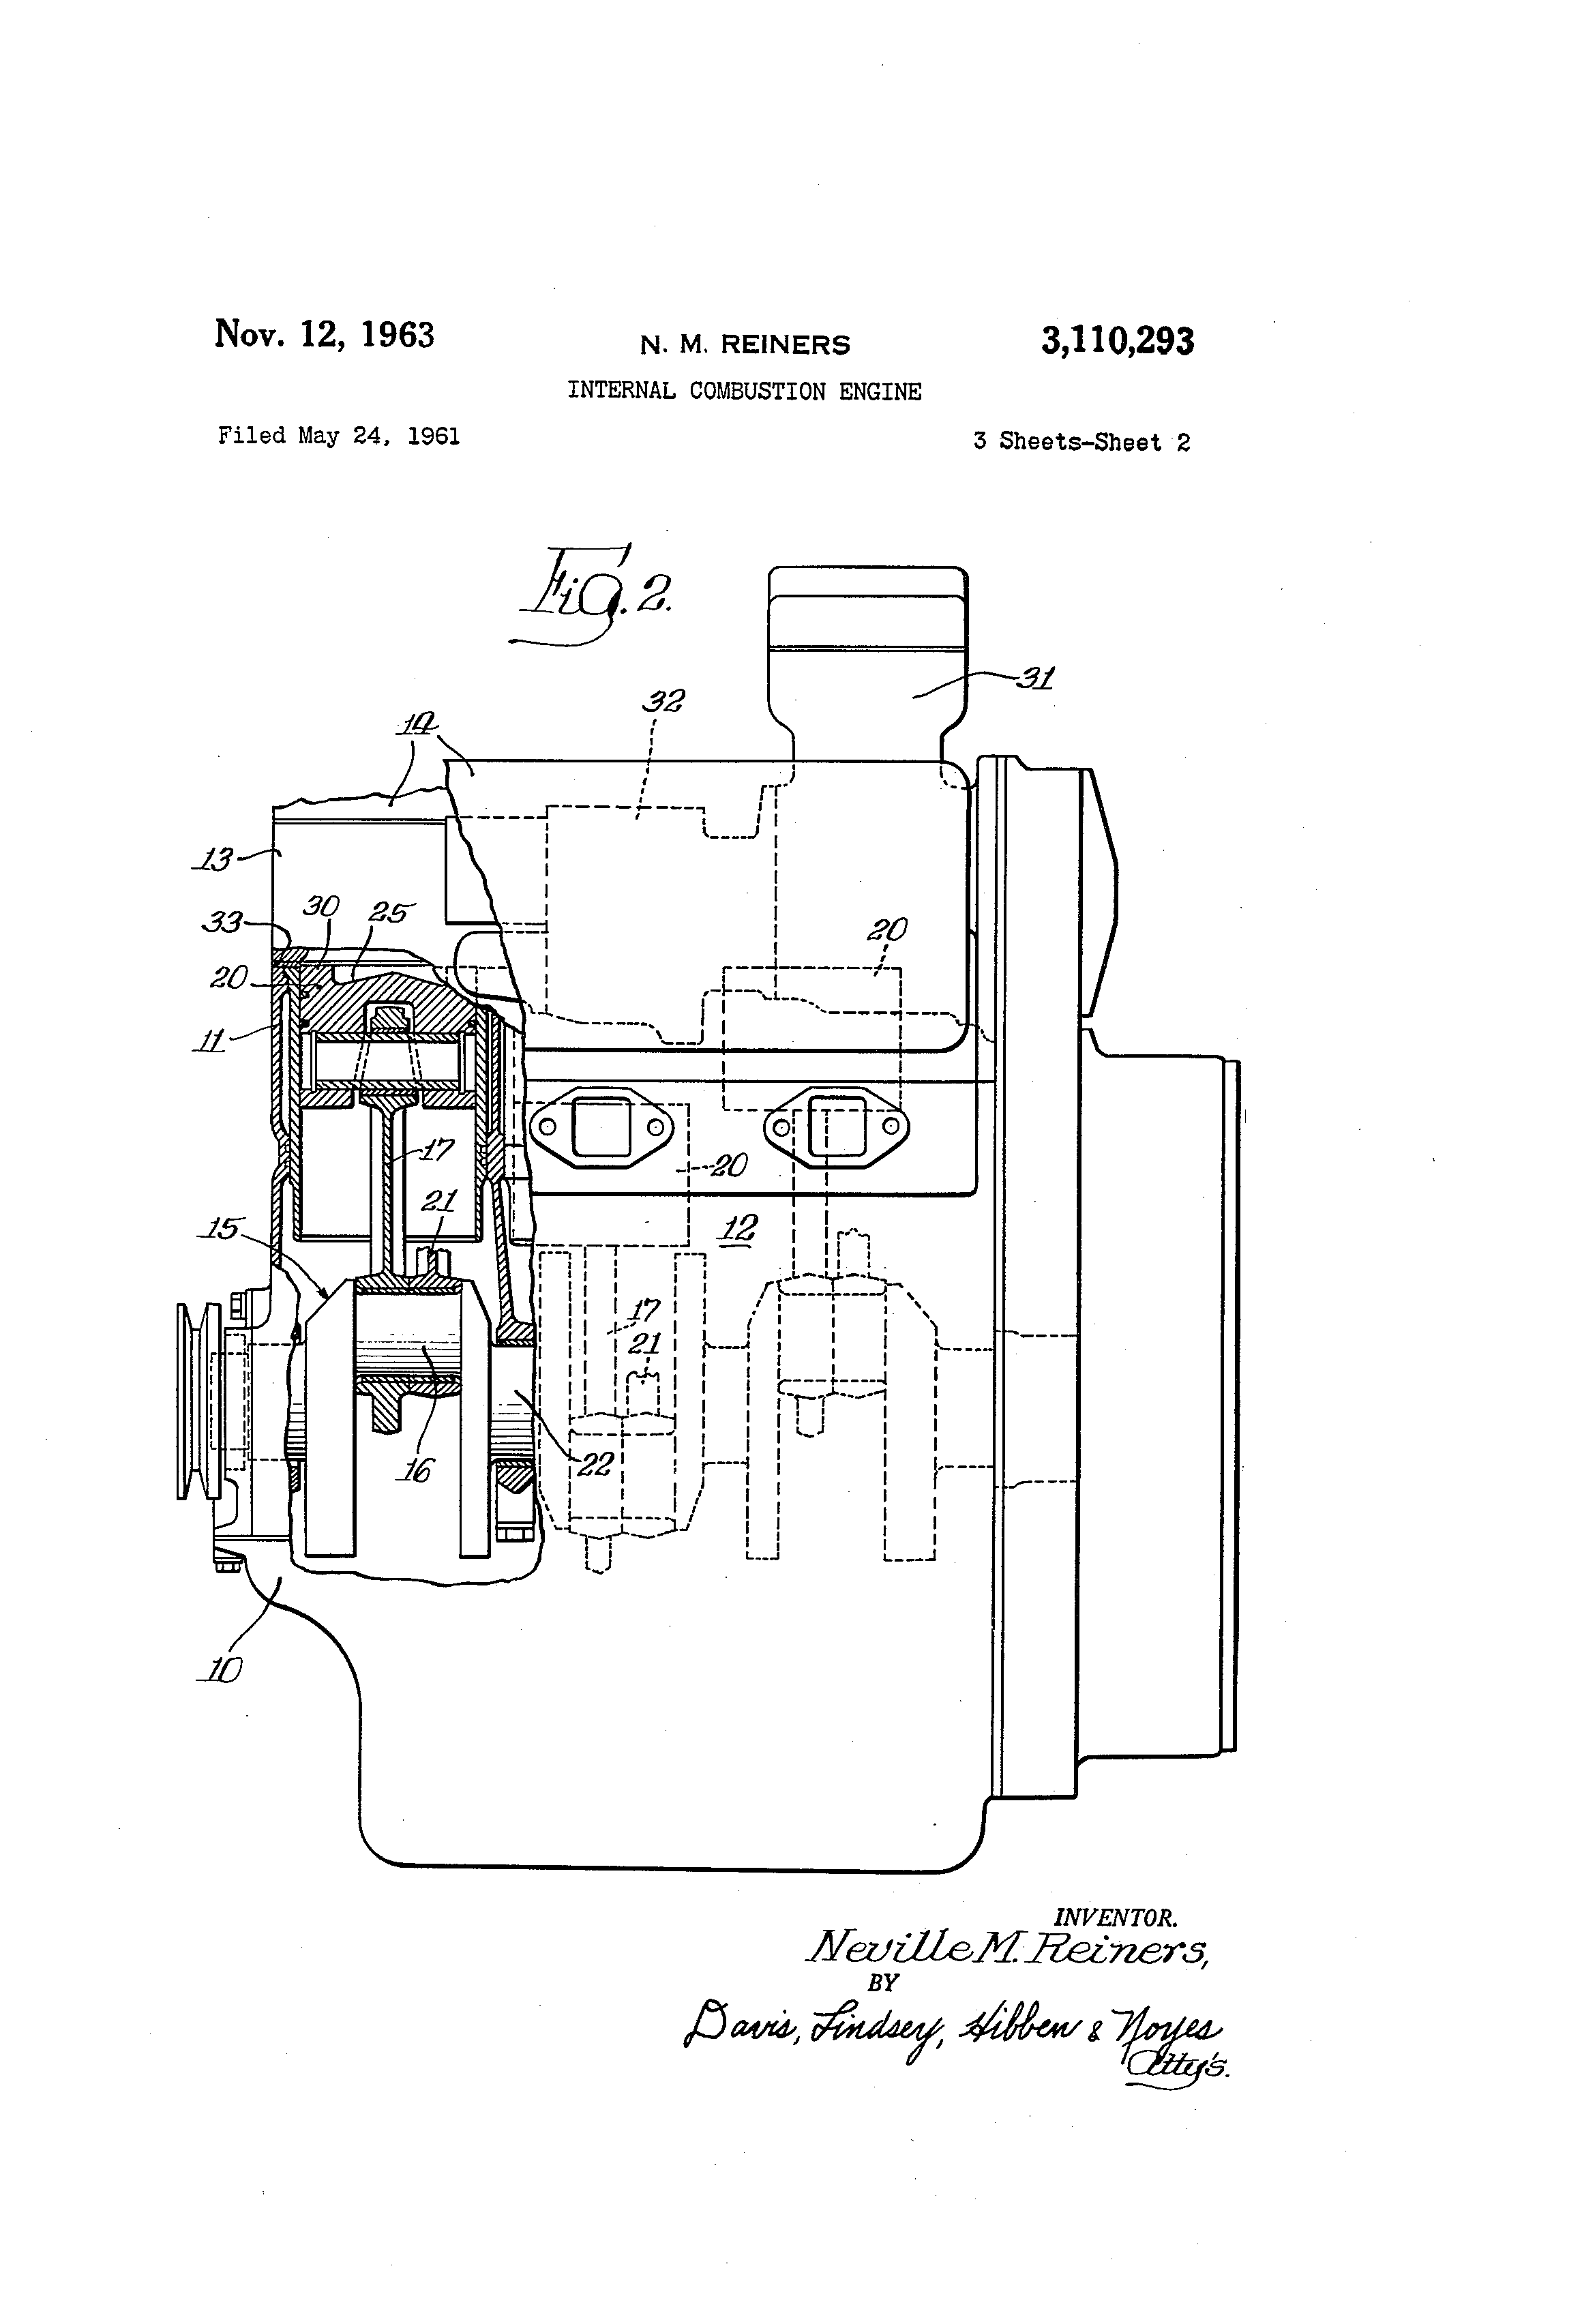 Internal Combustion Engine Diagram Of The Ott | Wiring Diagram